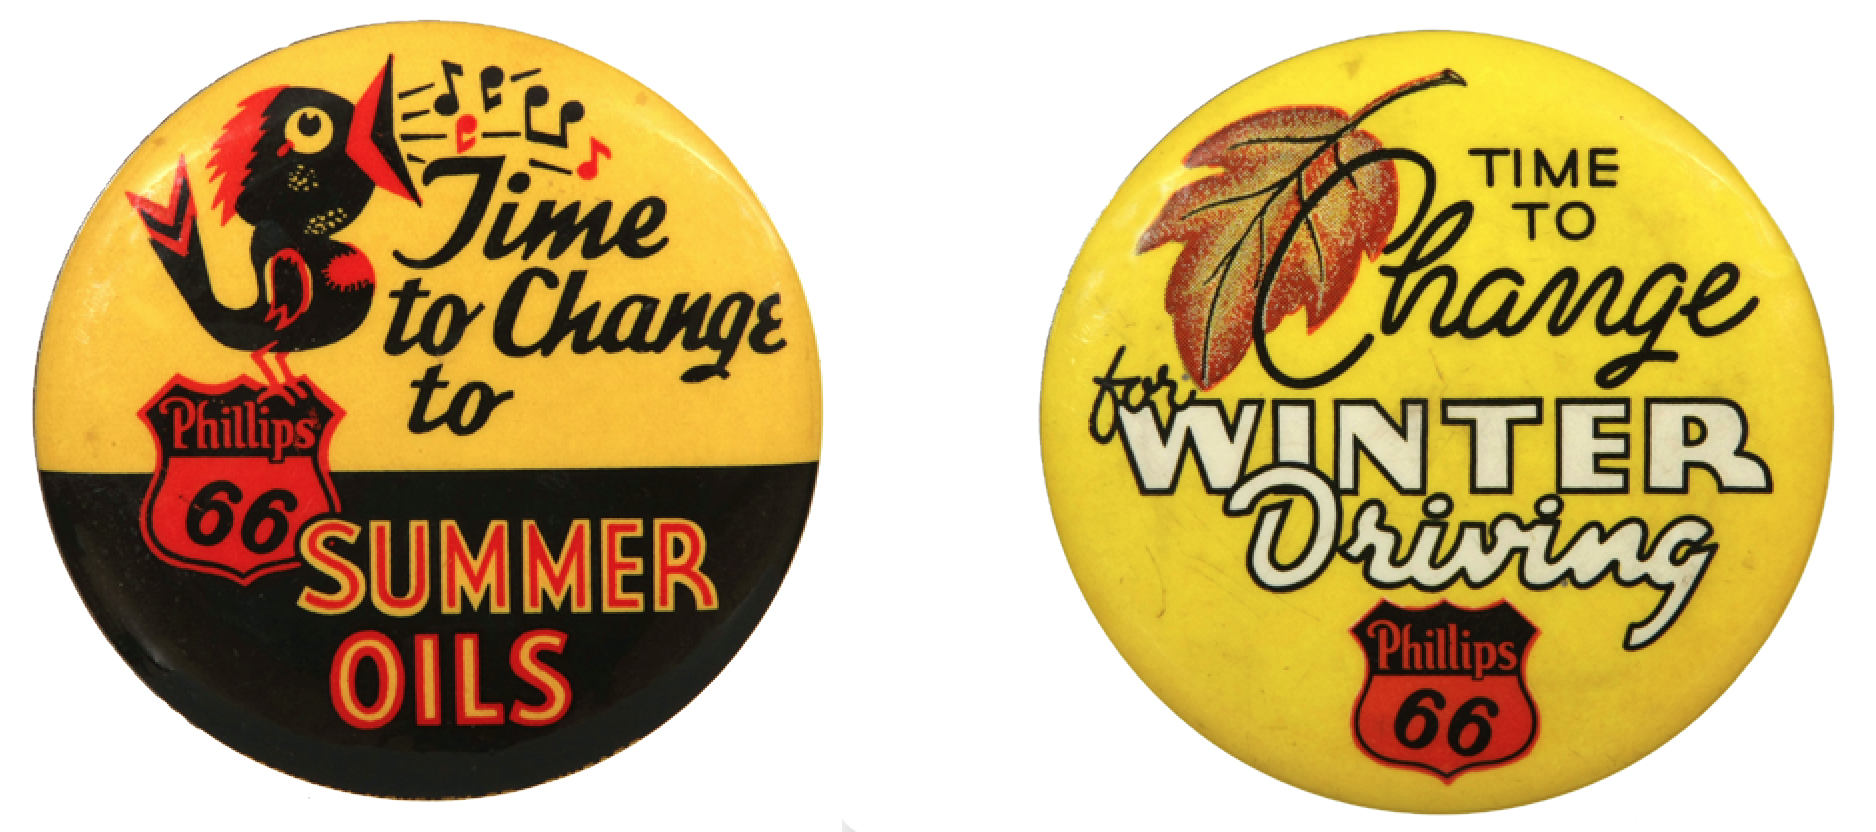 Phillips Summer and Winder Oil Badges